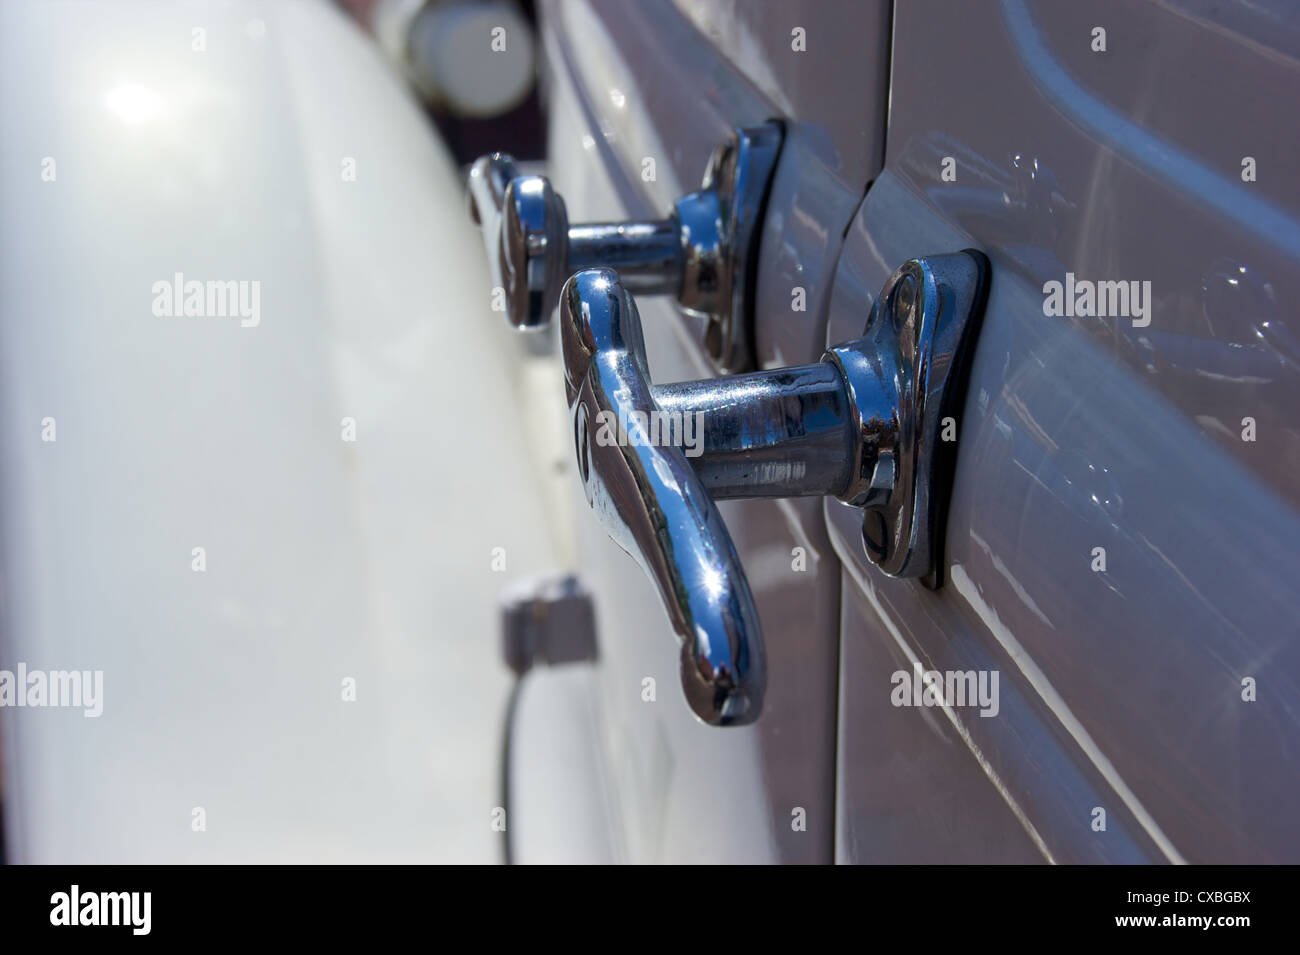 Close up of old chrome door handles on the side of an antique white automobile. - Stock Image